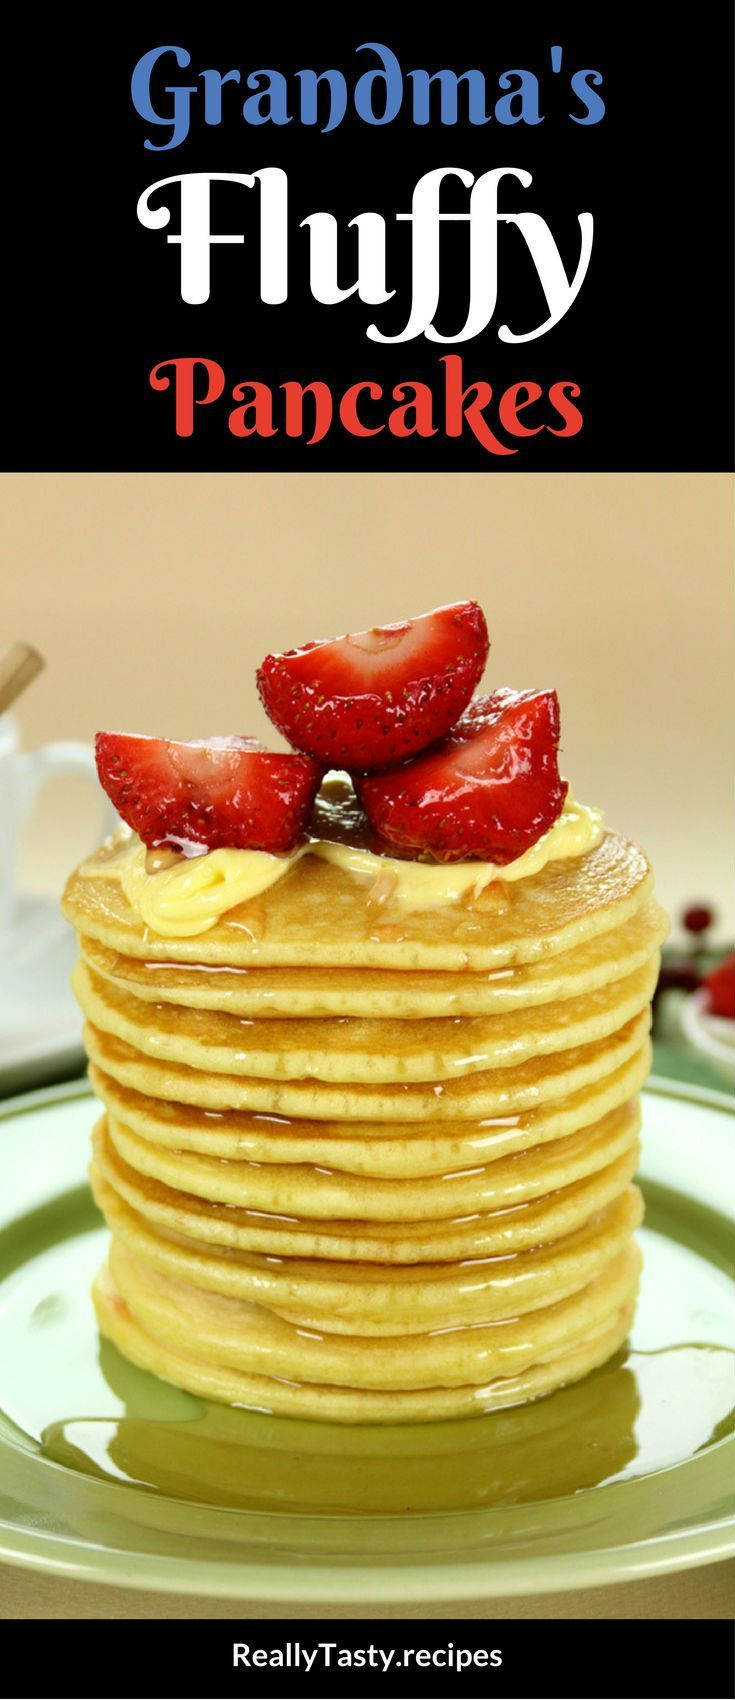 Fluffy pancakes recipe really tasty recipes breakfast food why eat regular pancakes when you can enjoy super fluffy pancakes just the way grandma used to make them ccuart Gallery